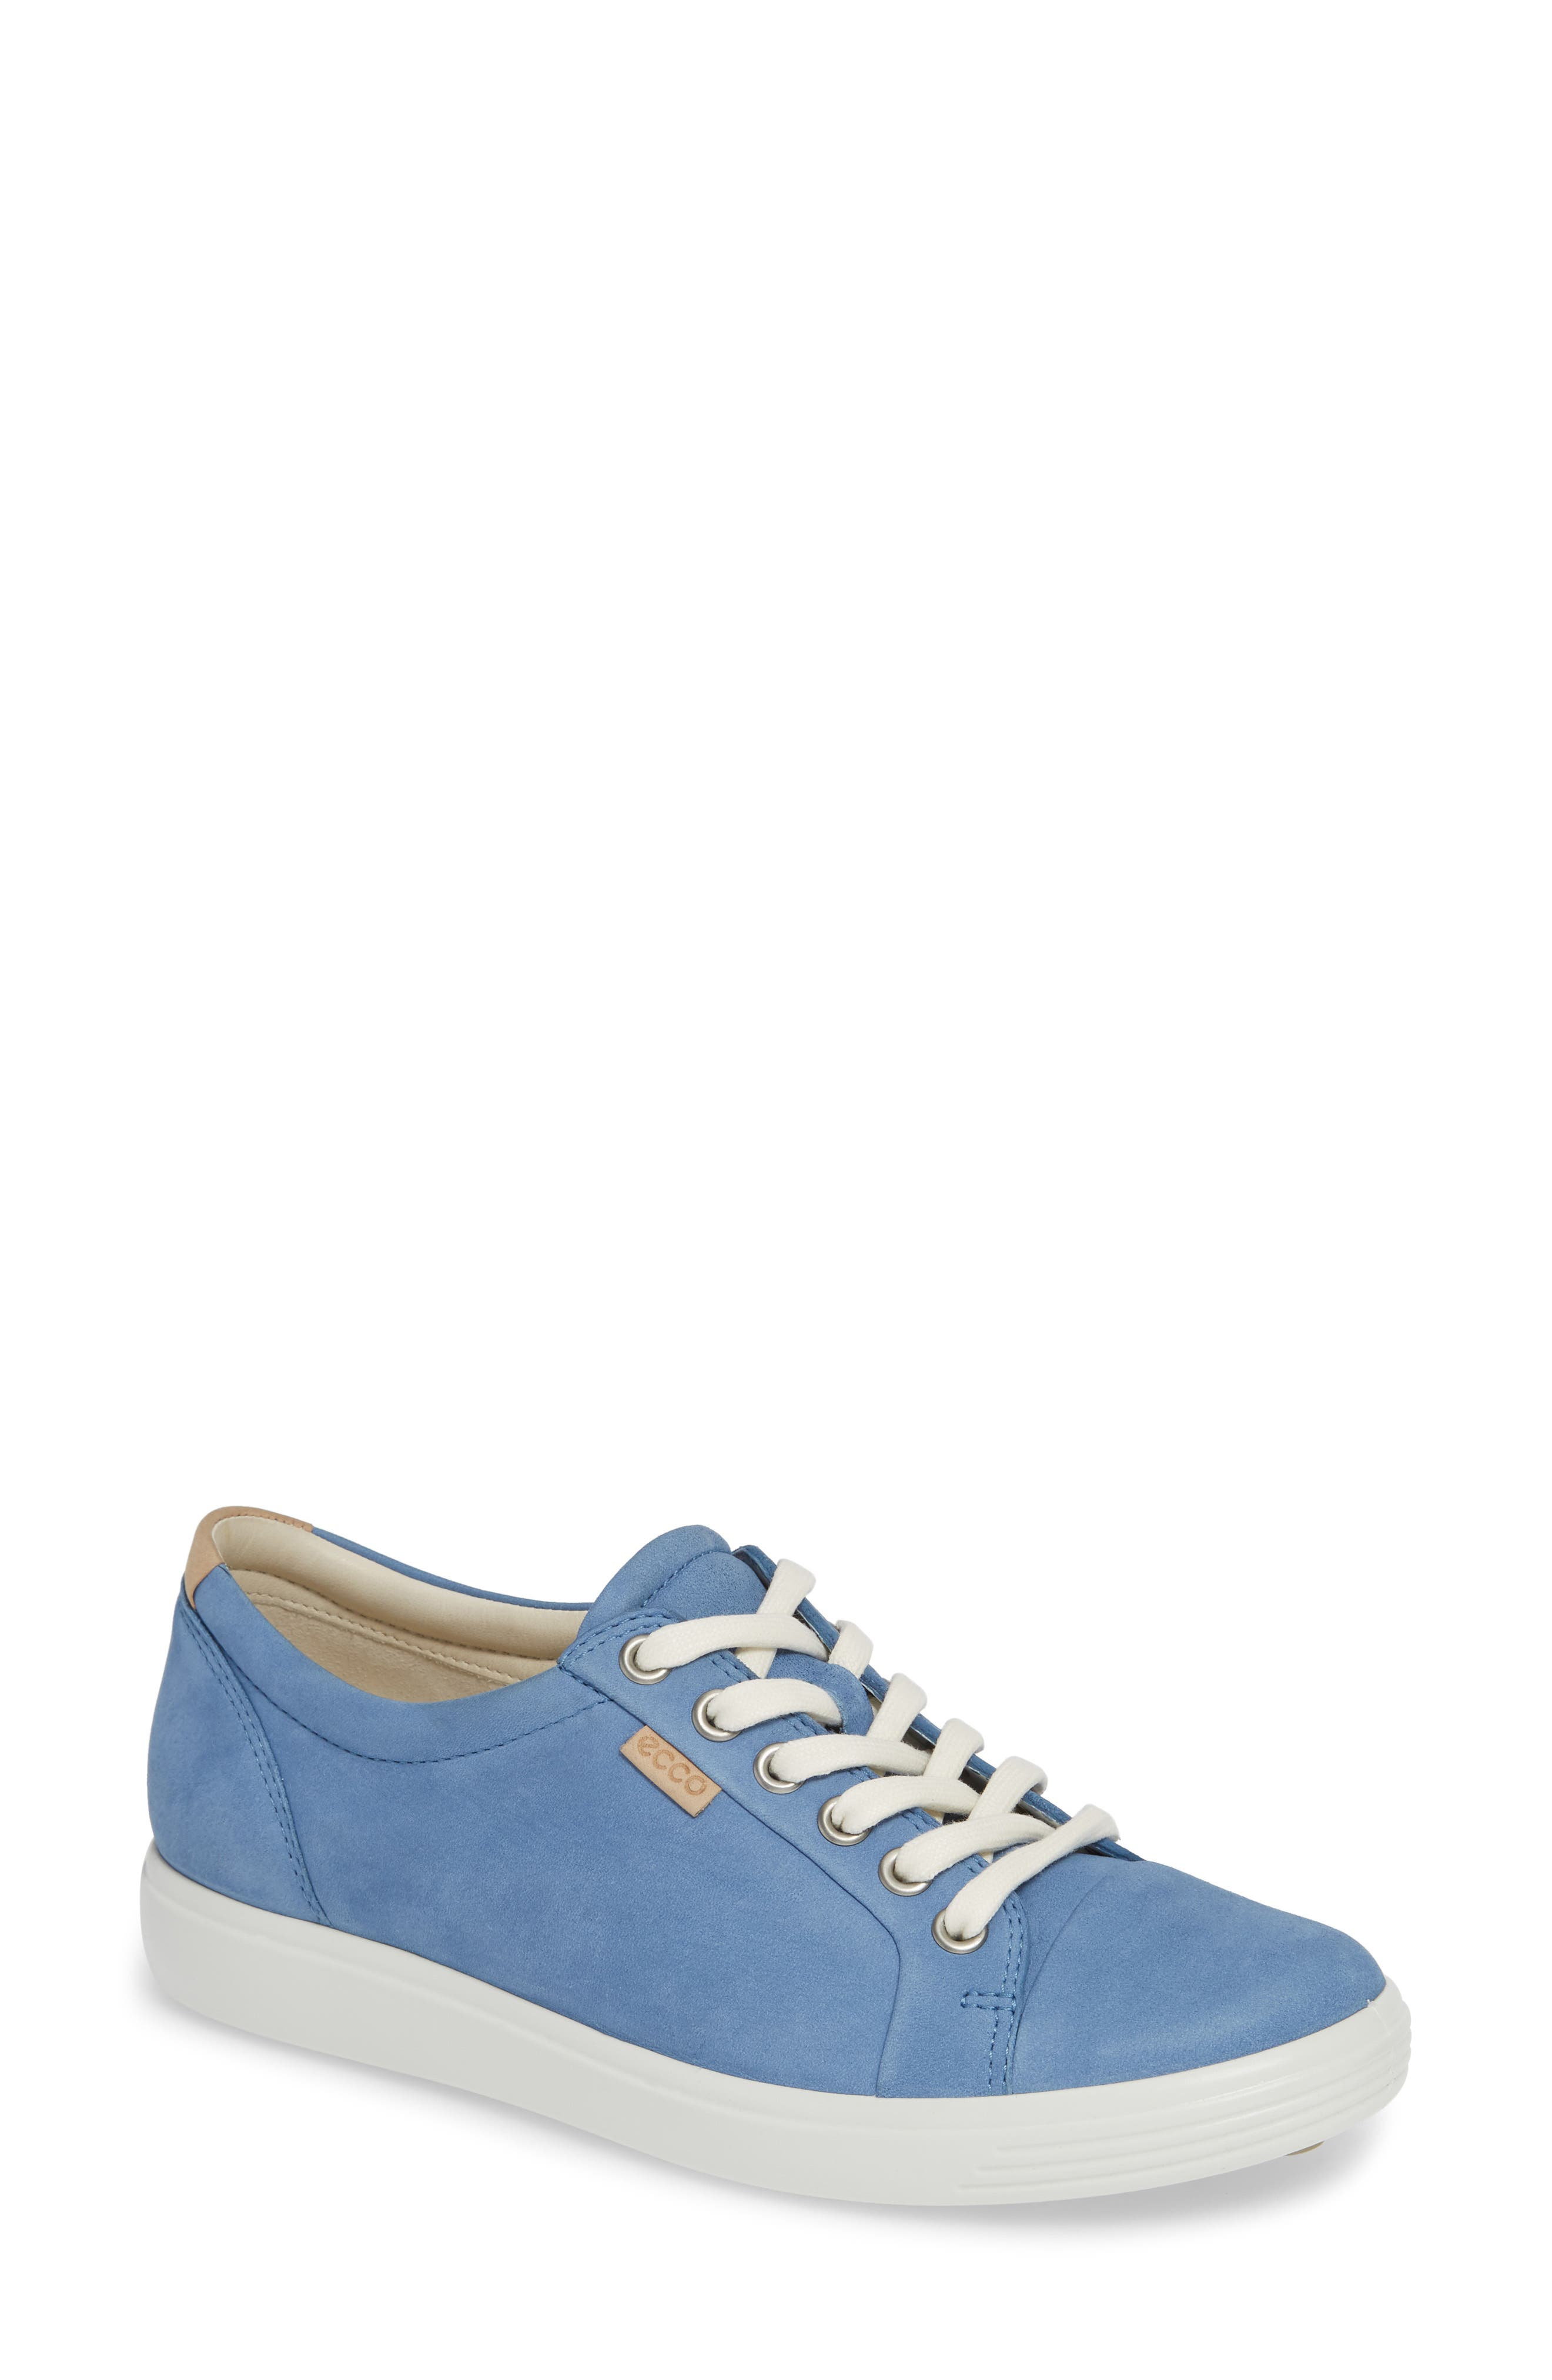 Soft 7 Sneaker, Main, color, RETRO BLUE LEATHER